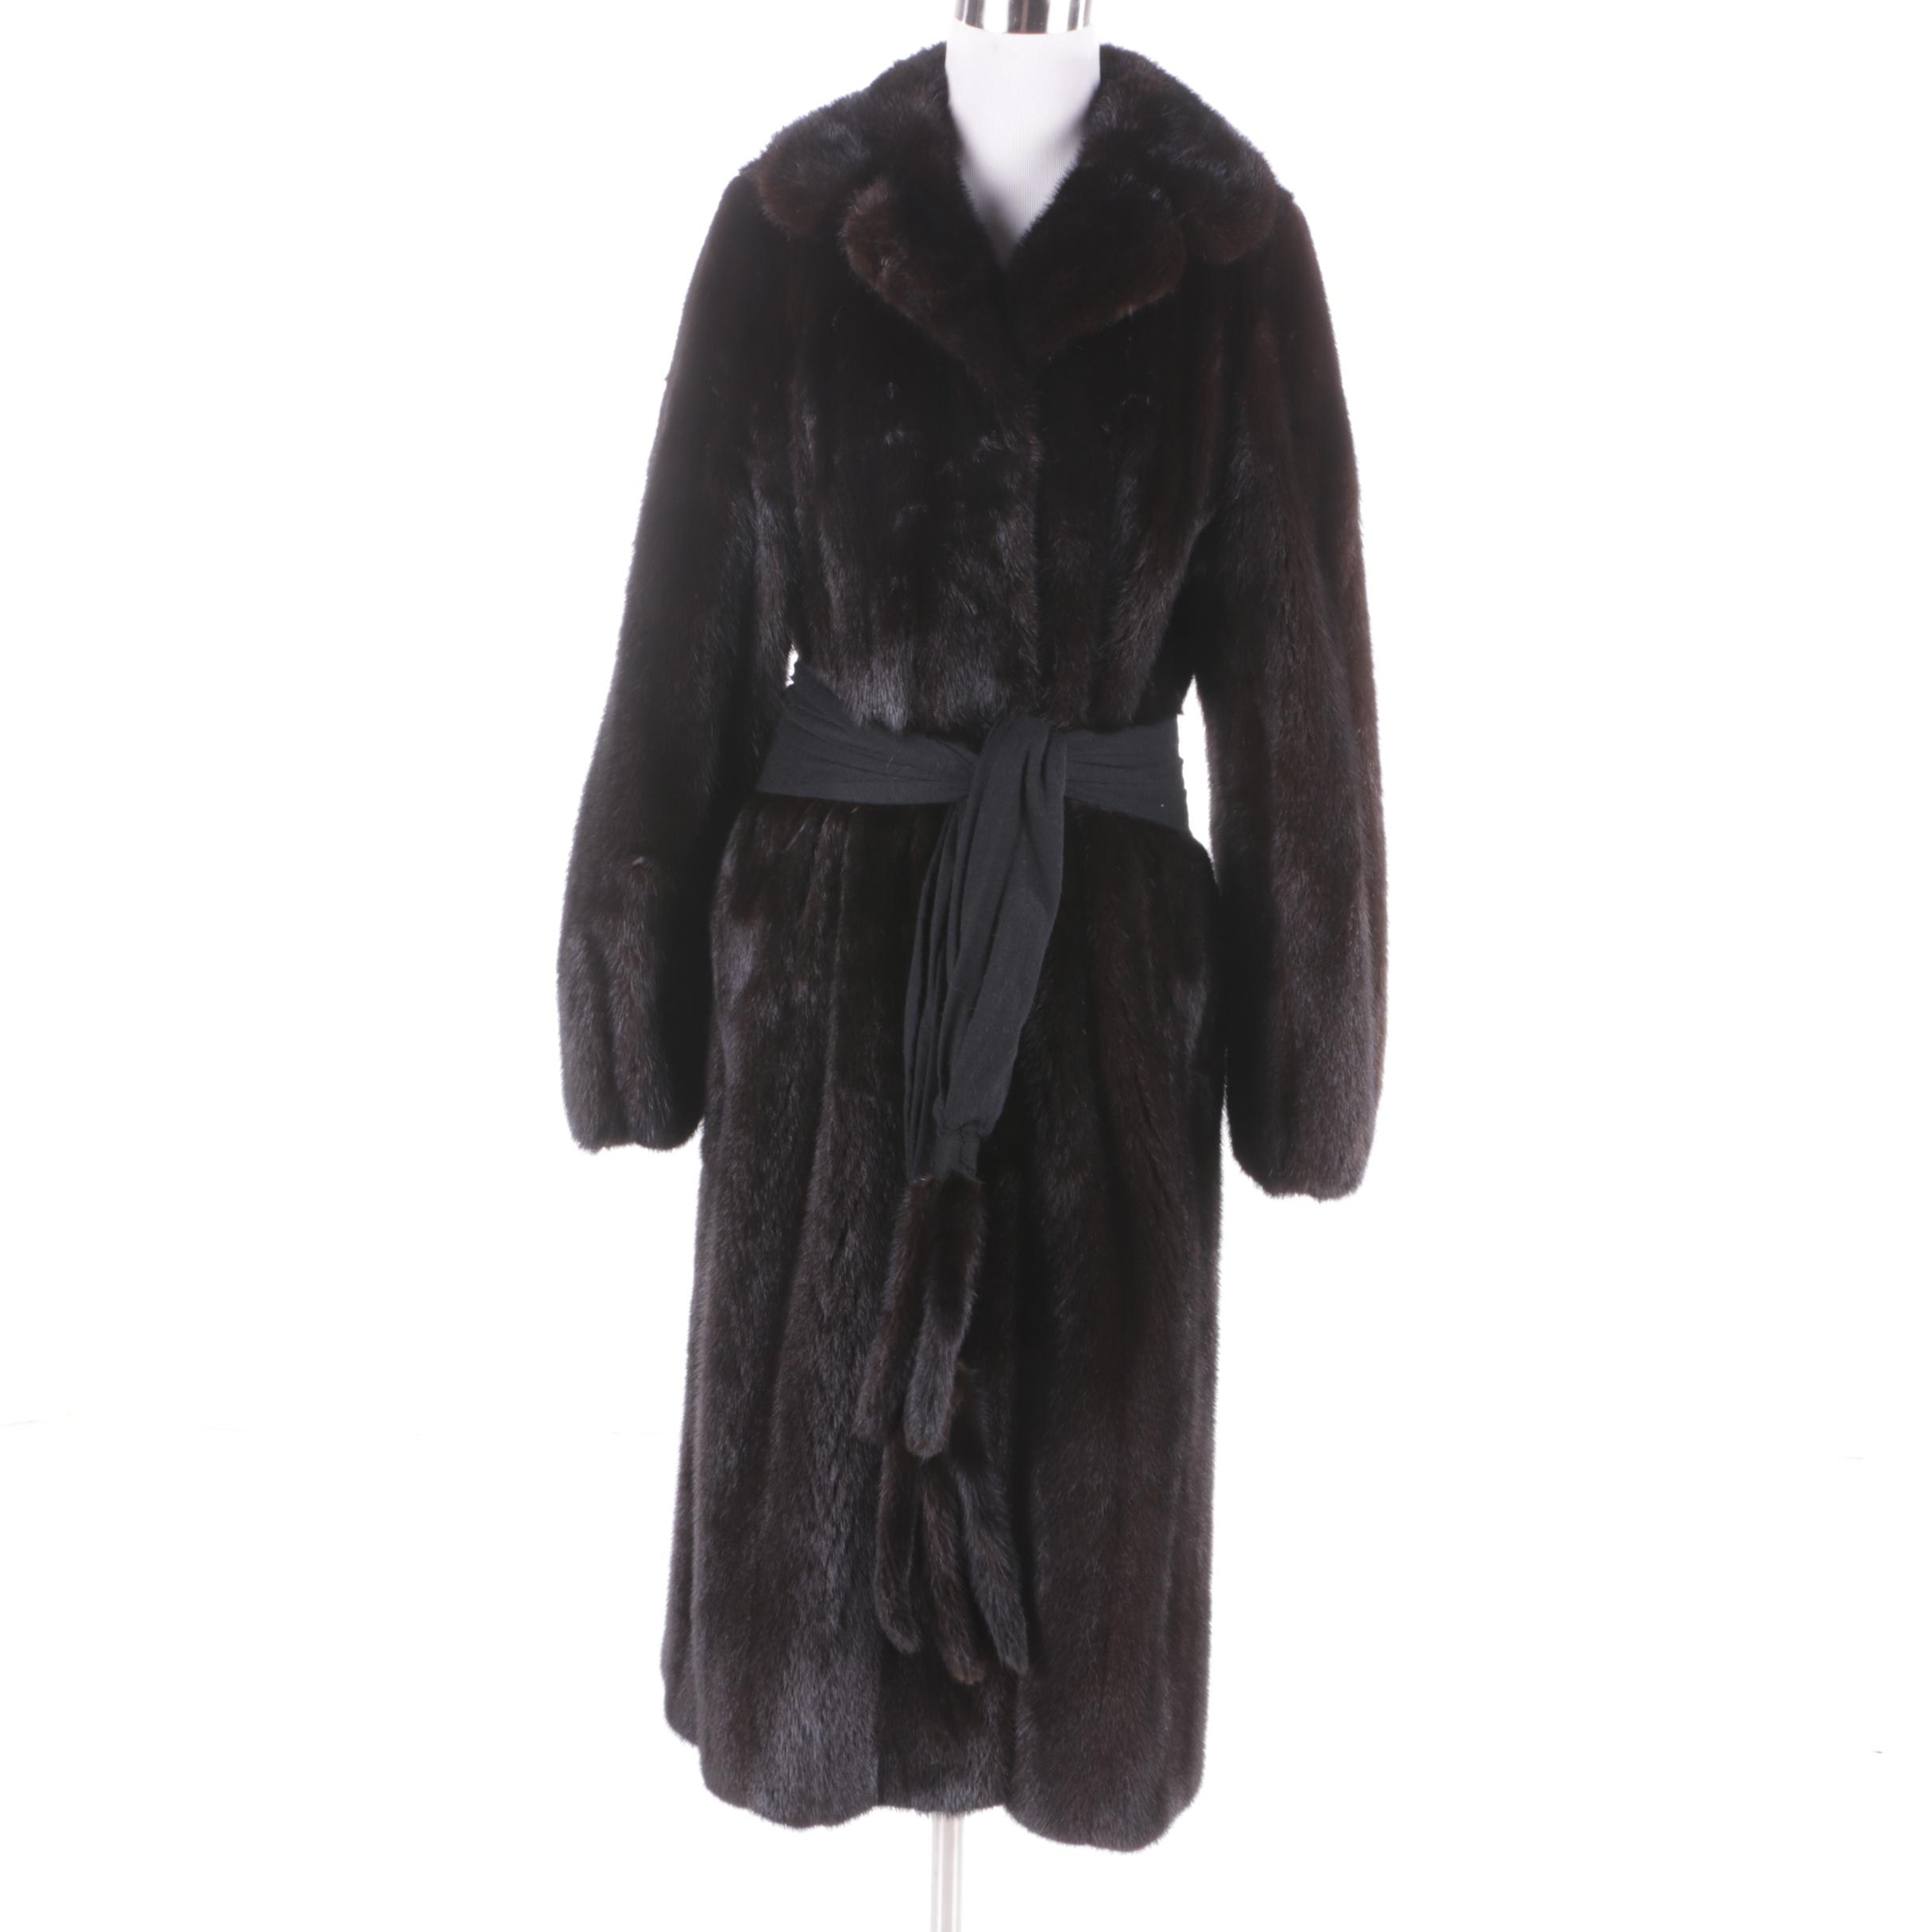 Women's Vintage Barth-Wind Dark Mahogany Mink Fur Coat with Cinch Belt